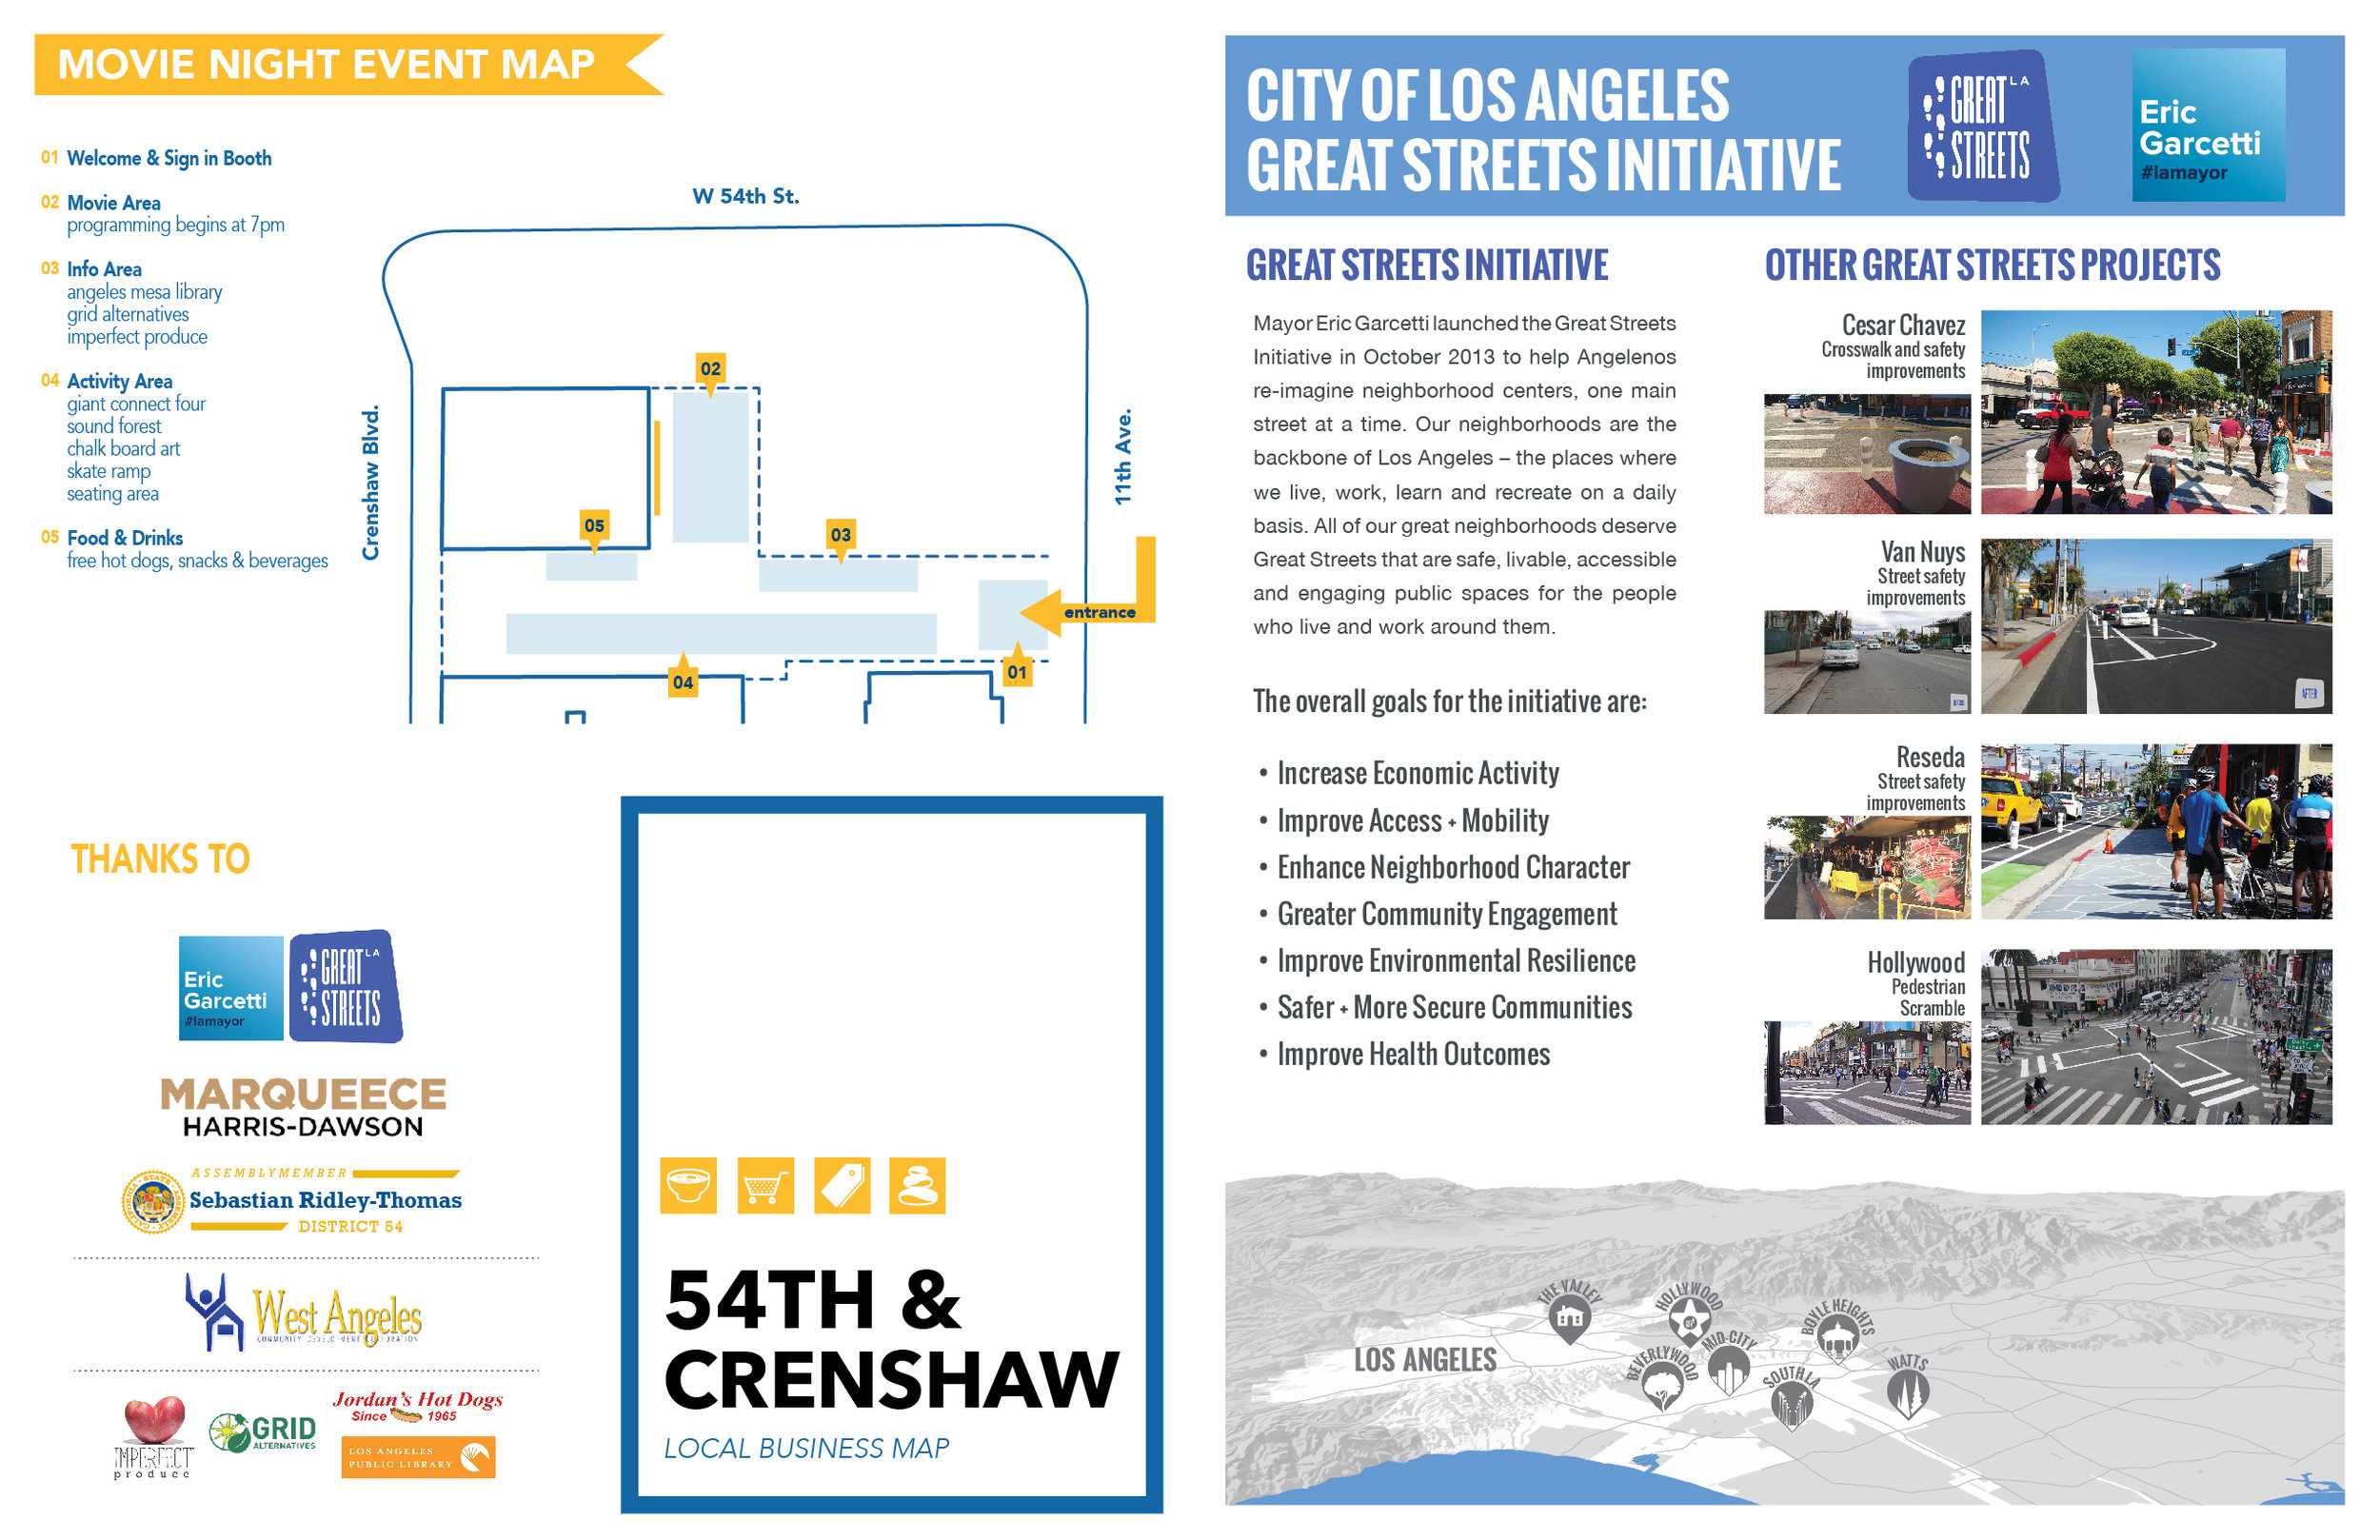 170922_West Angeles CDC Local Business Map-01.jpg